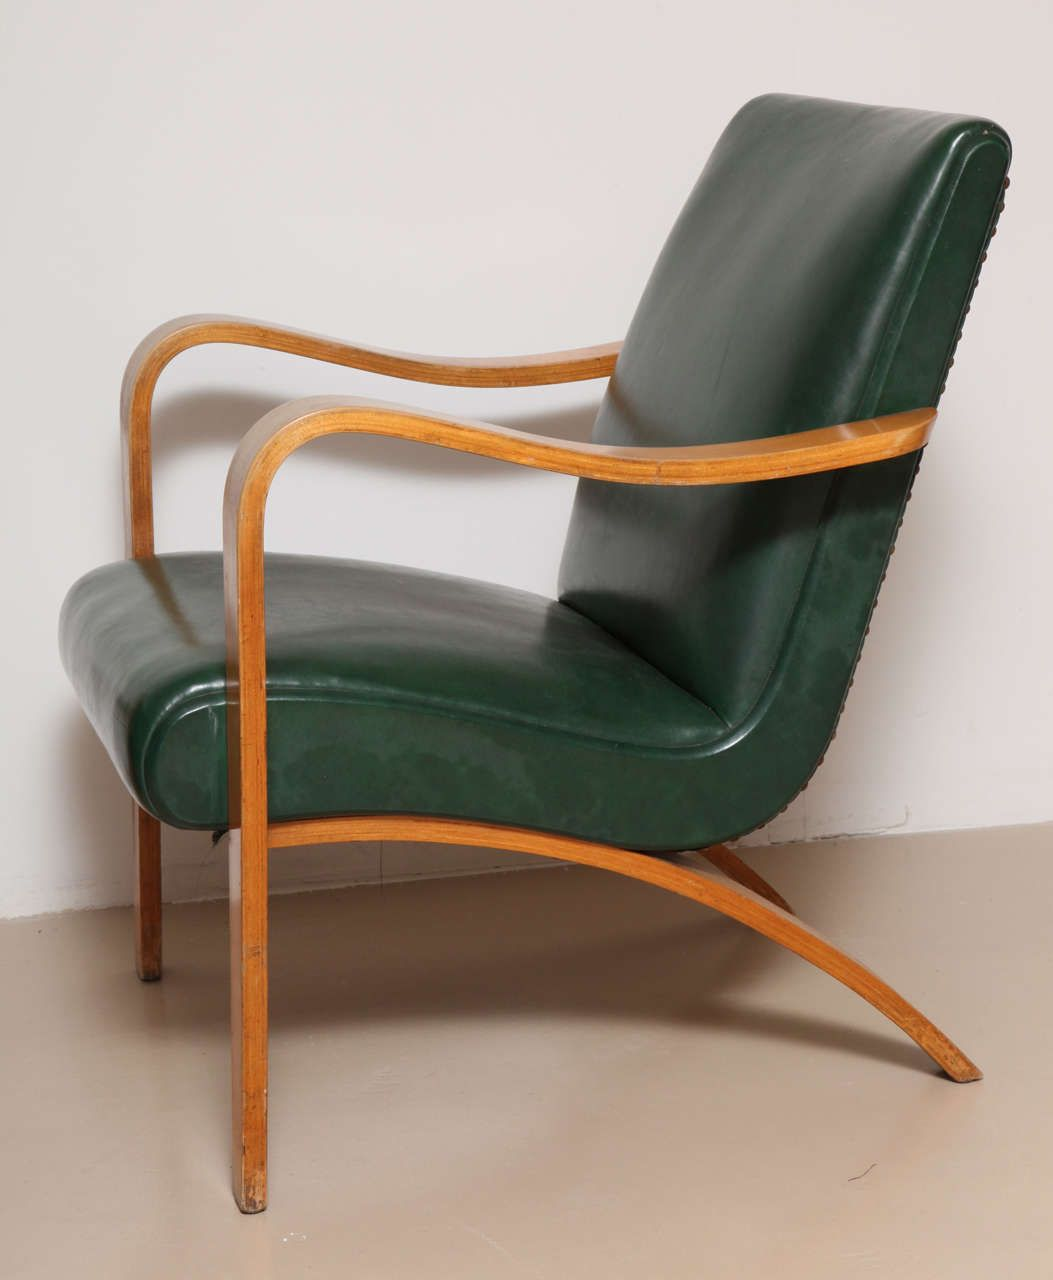 Groovy Pair Of 1940S Thonet Bentwood Lounge Chairs Gtrb Chair Gmtry Best Dining Table And Chair Ideas Images Gmtryco